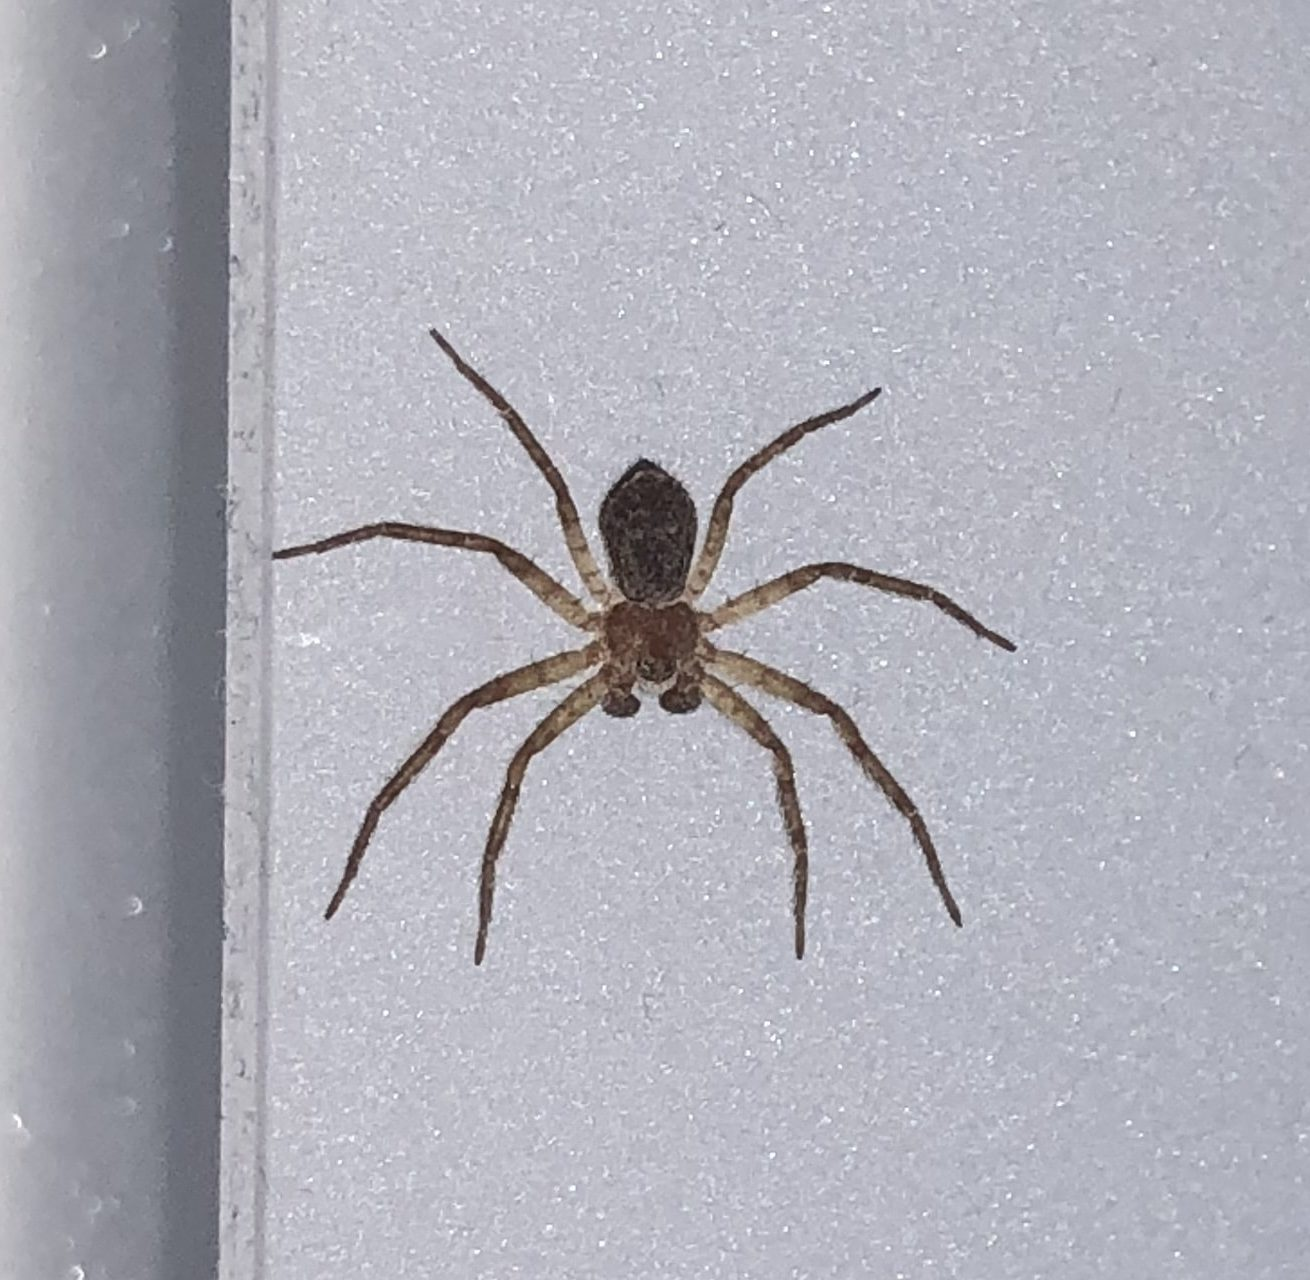 Picture of Philodromus - Male - Dorsal